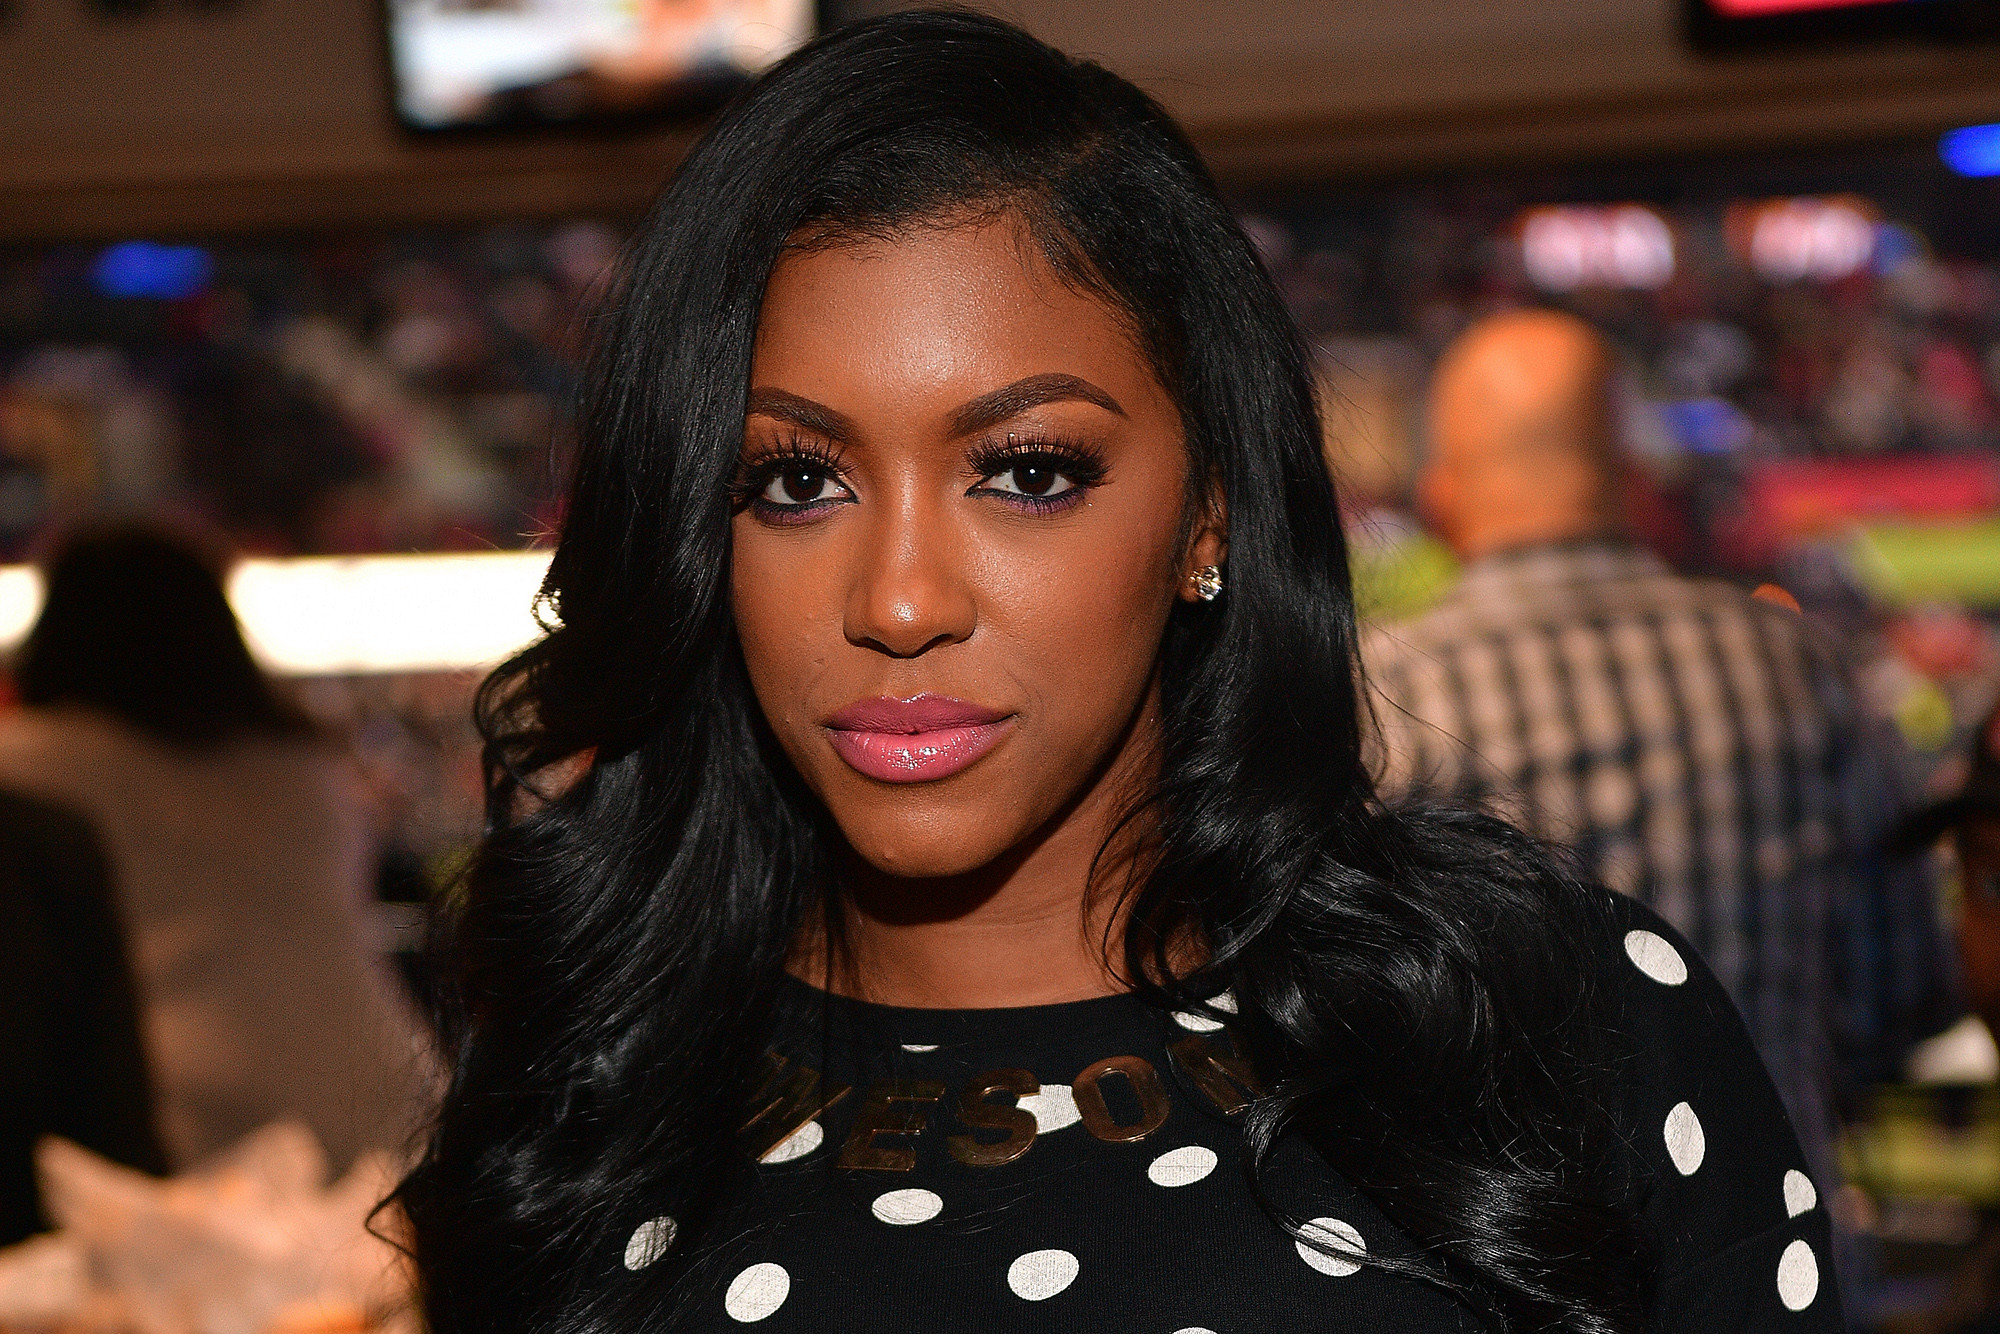 Porsha Williams Spilled The Tea On What Life Has To Offer - Fans Call Her The Queen Of Snapback